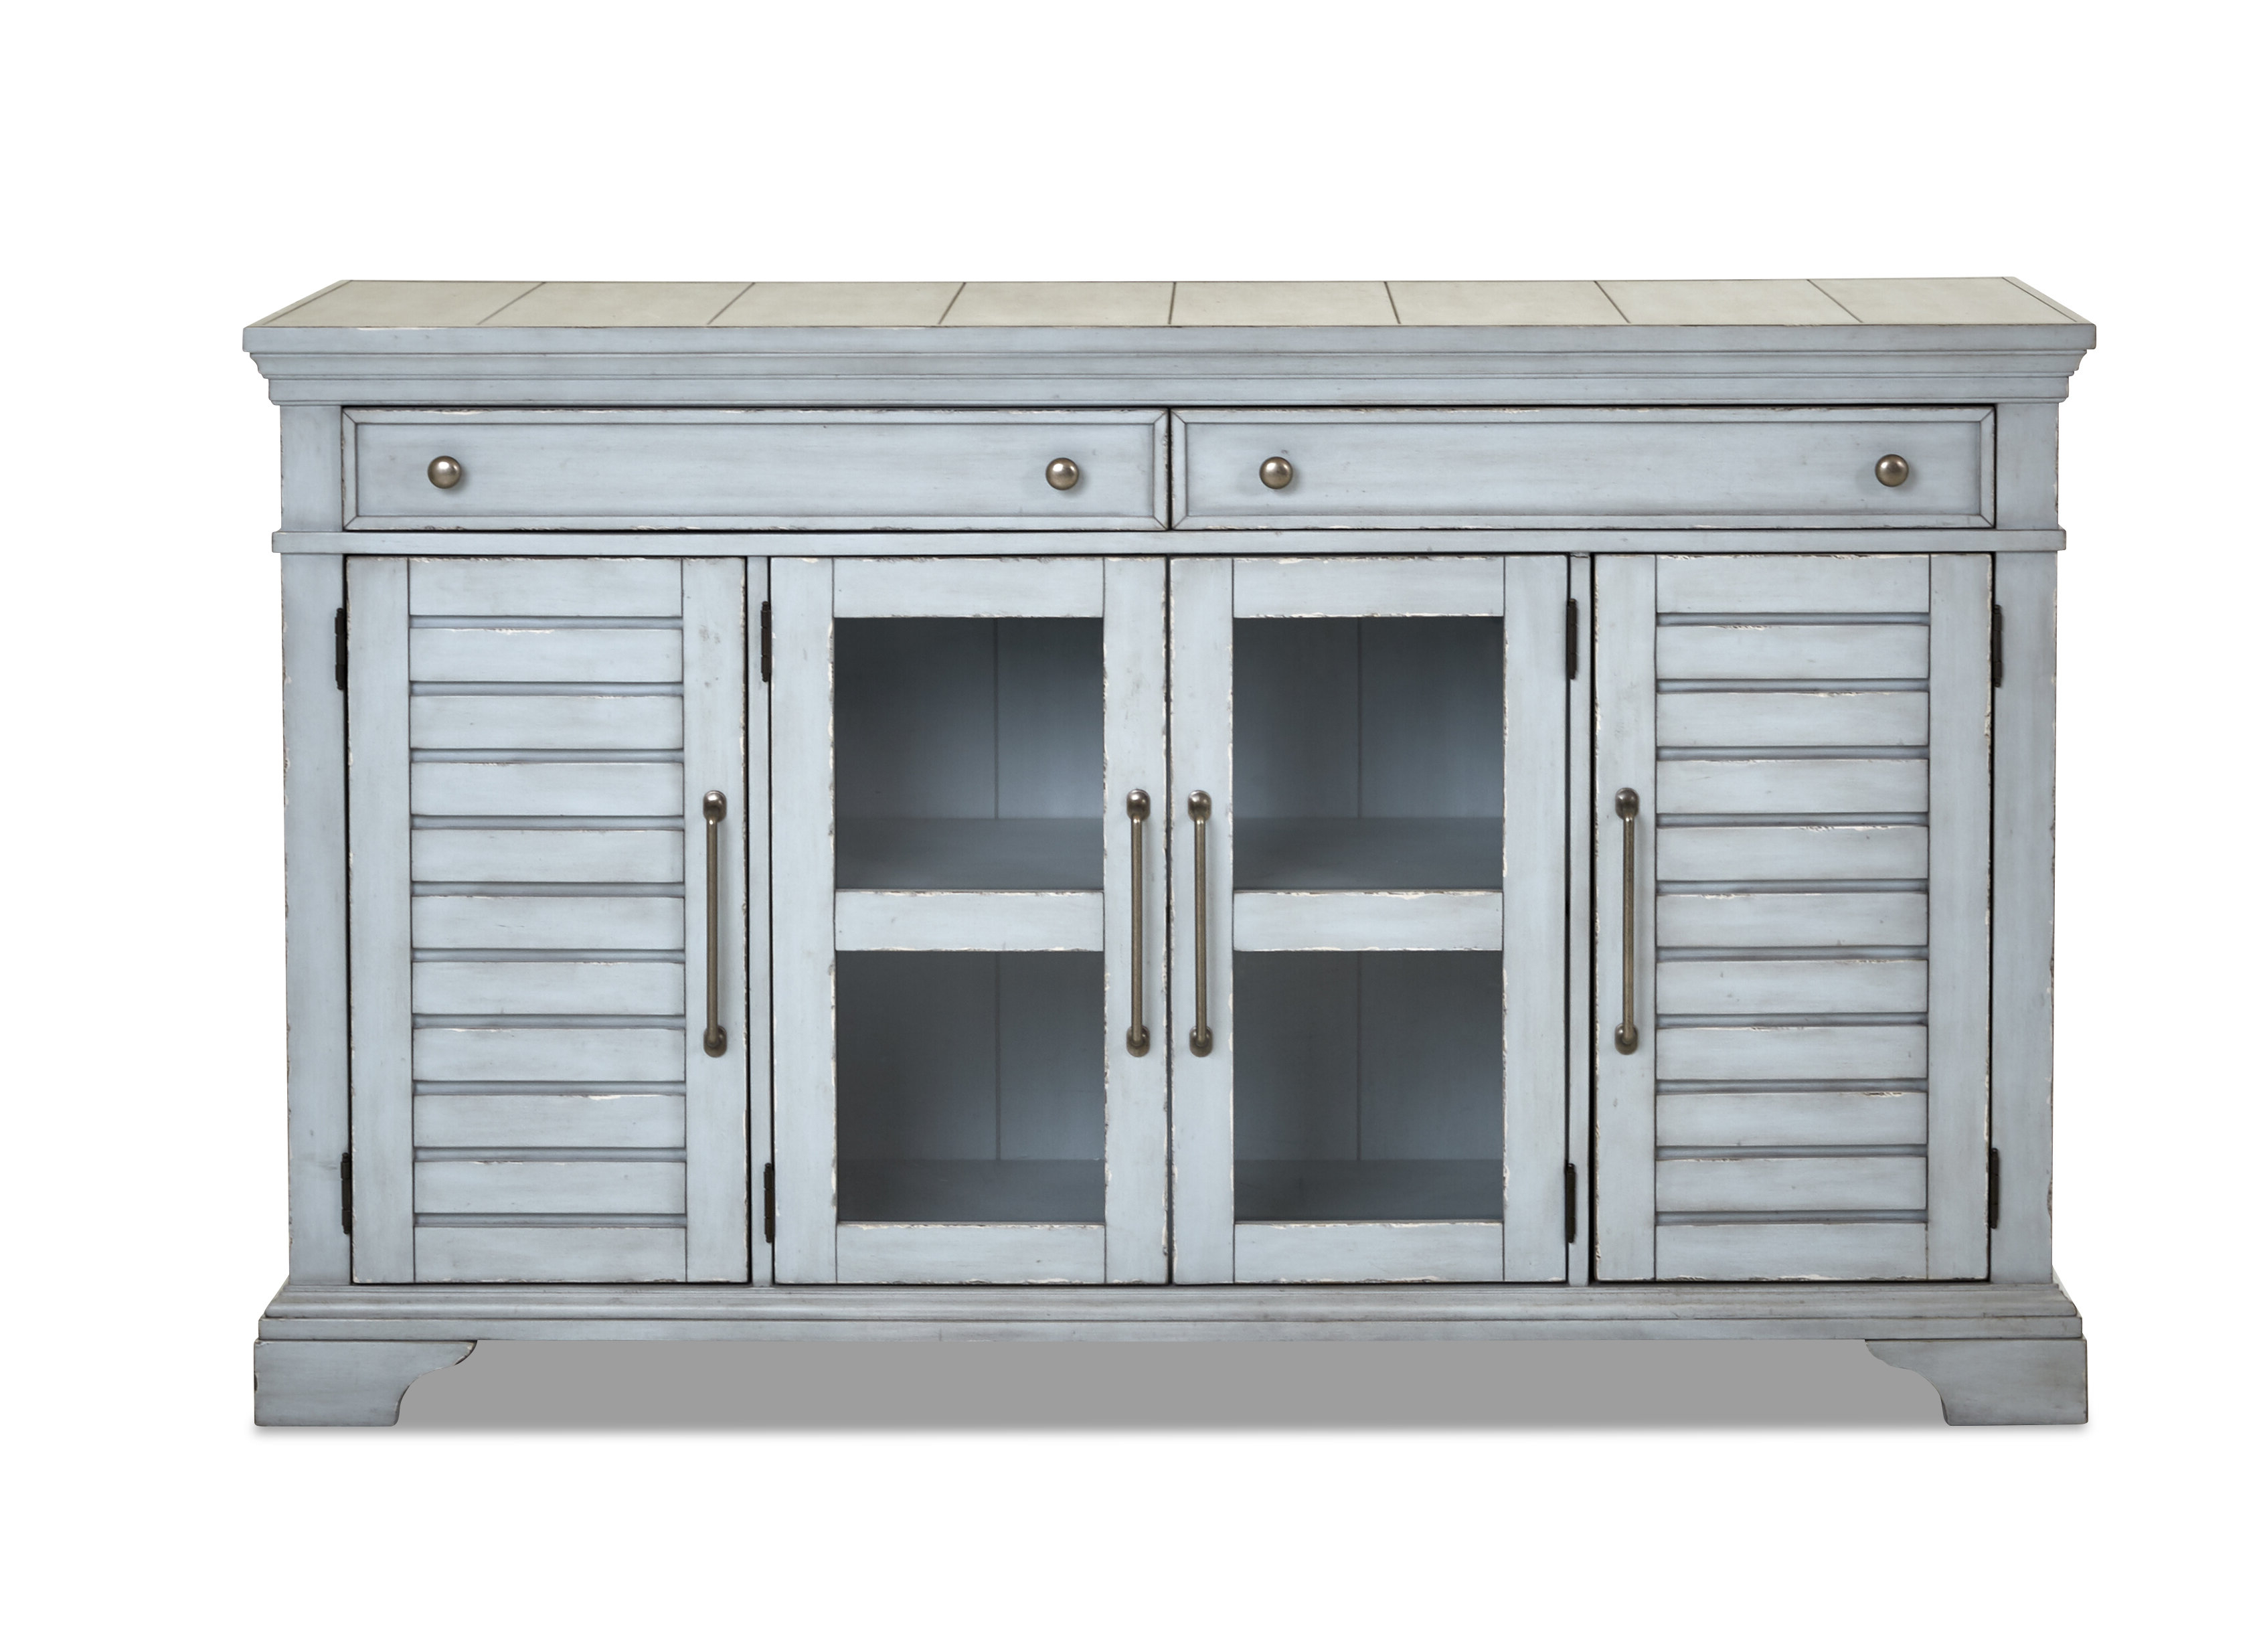 Most Recent Trisha Yearwood Home Key West Sideboard Within Saguenay Sideboards (Gallery 10 of 20)